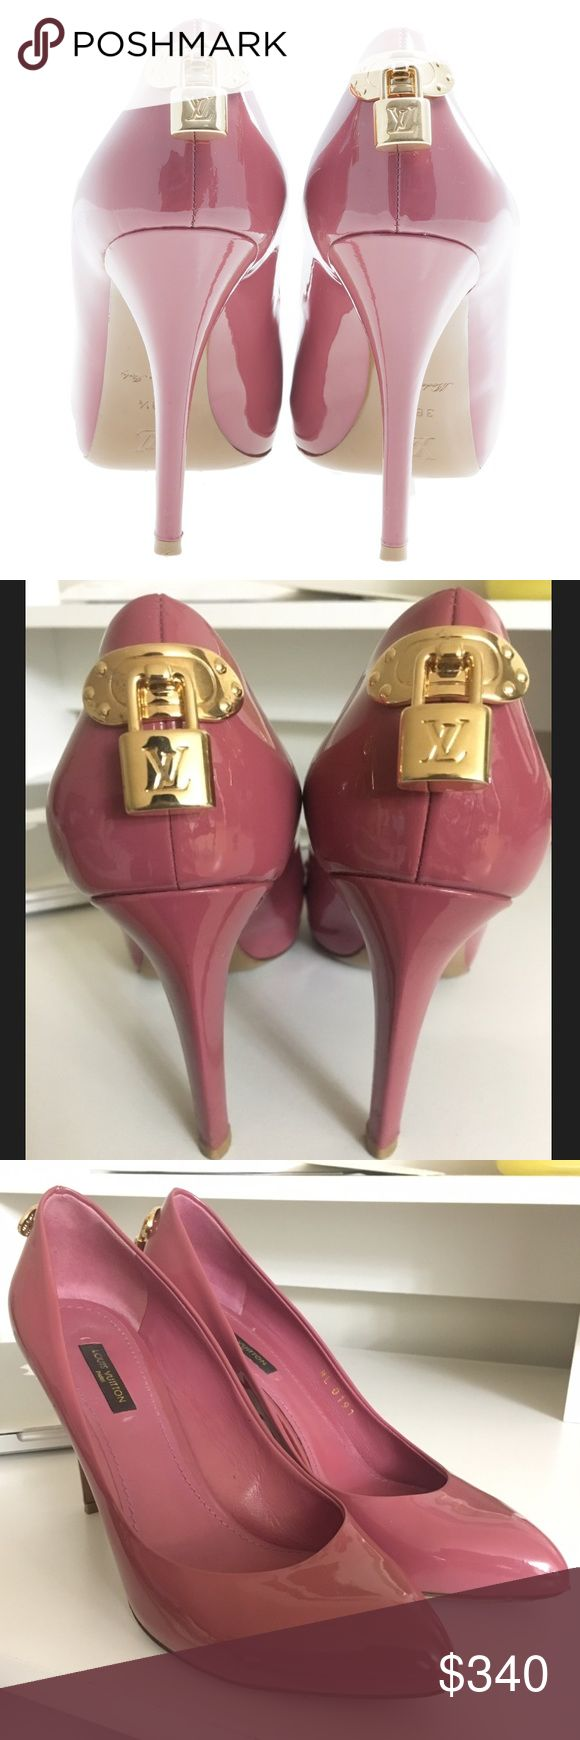 Louis Vuitton Oh Really Closed Toe Pump Sz 37 Great condition. Worn a few times but only wear is on the bottoms. Size 37. Authentic. Louis Vuitton Shoes Heels